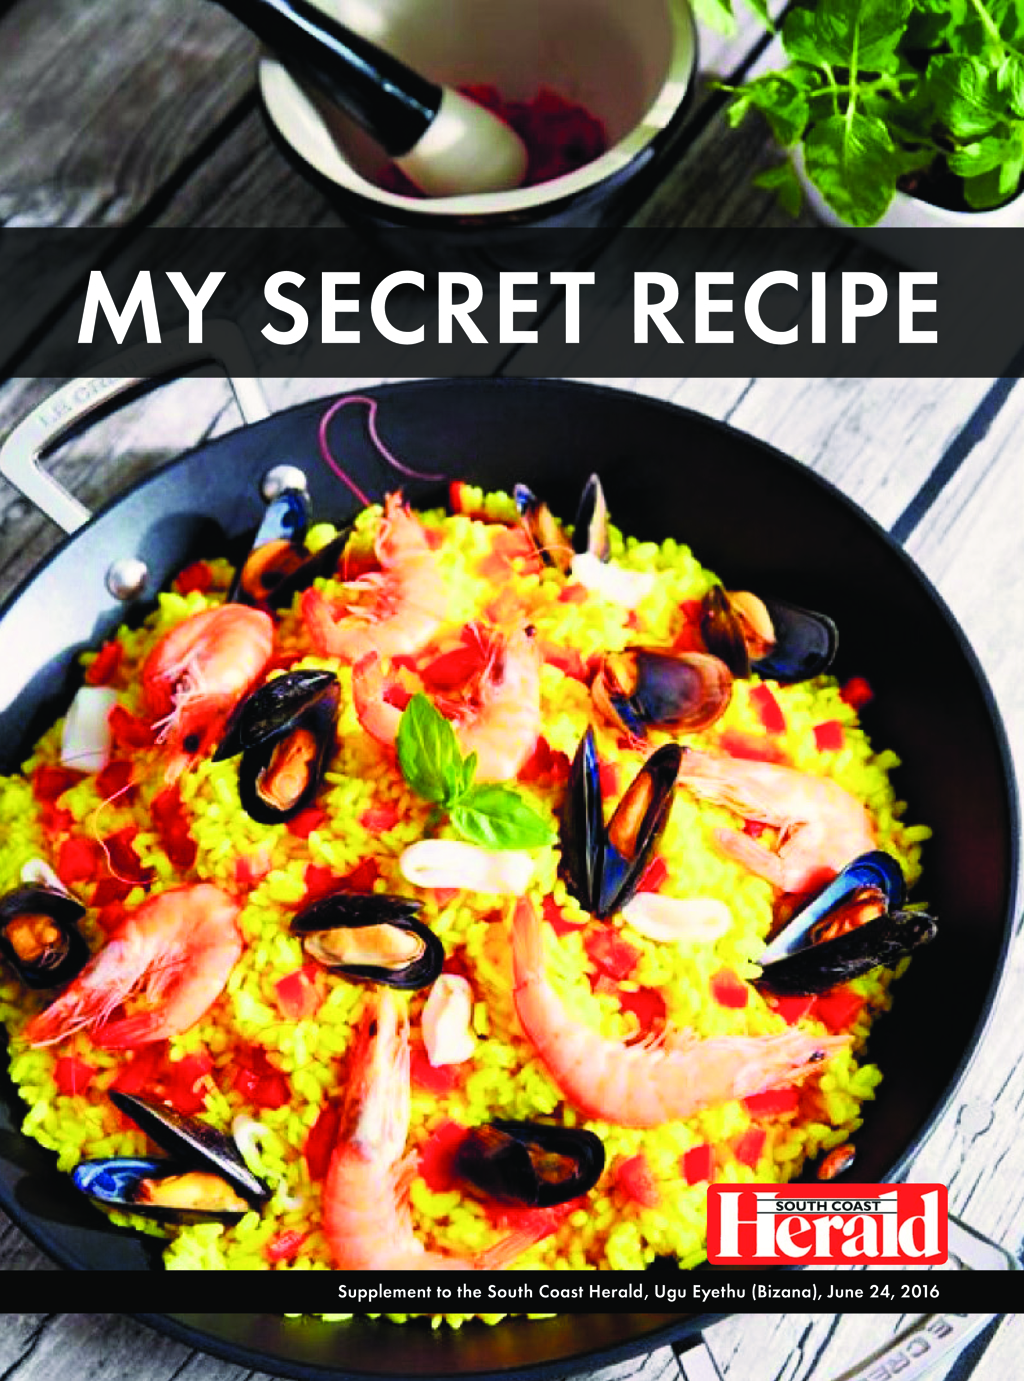 my-secret-recipe-2-epapers-page-1